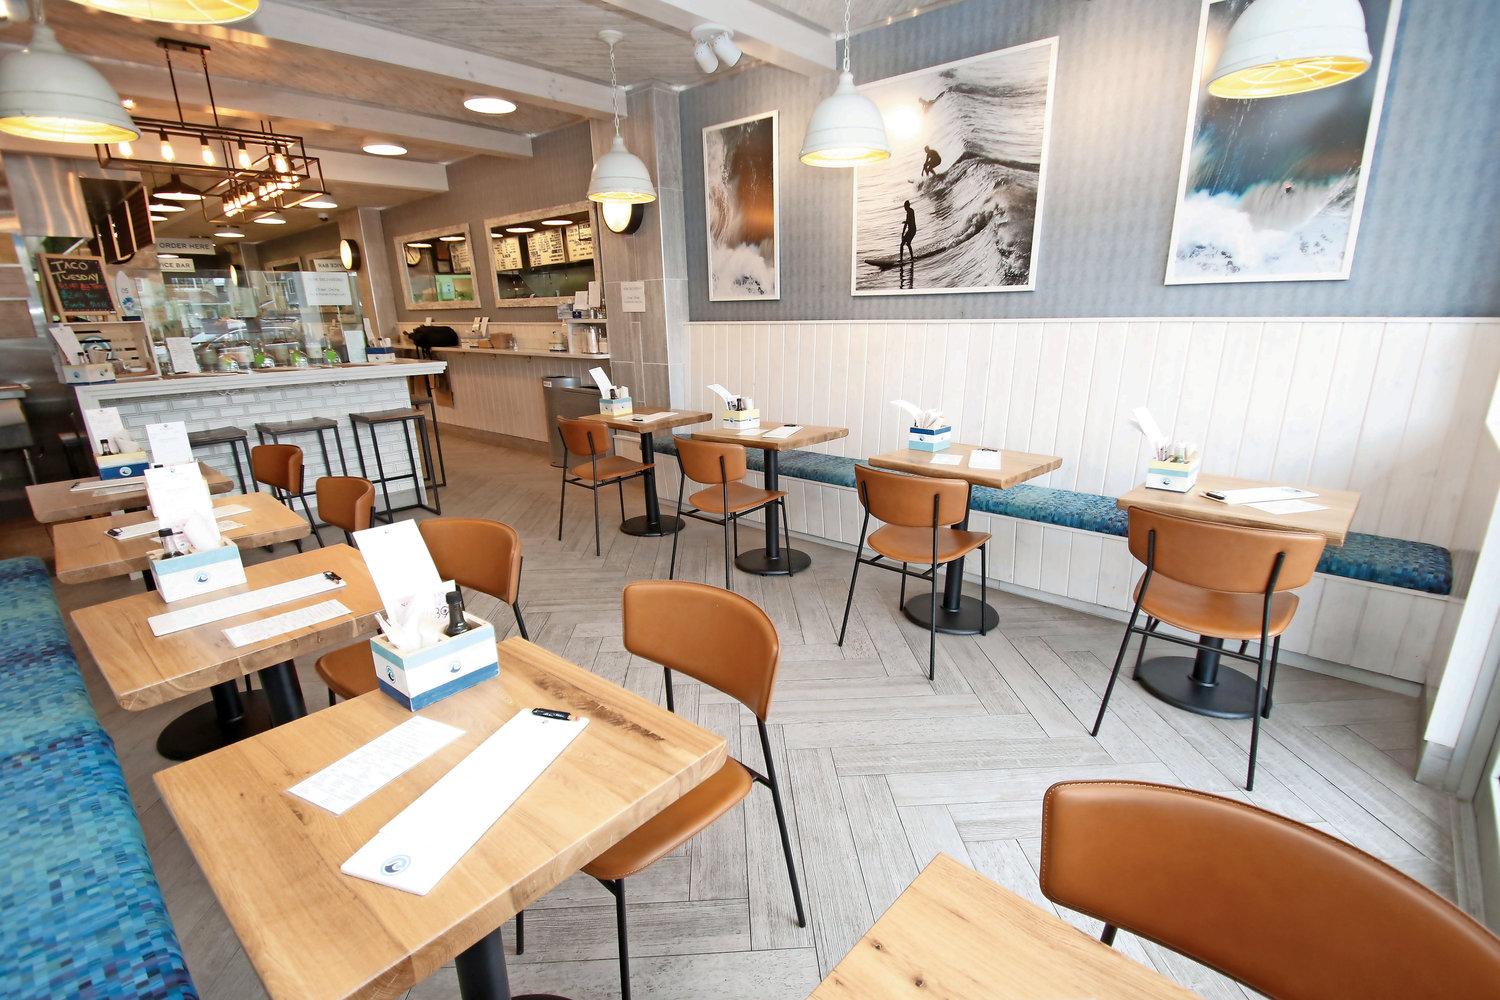 Pure Shore Kitchen opened at 655 E. Park Ave. last year.